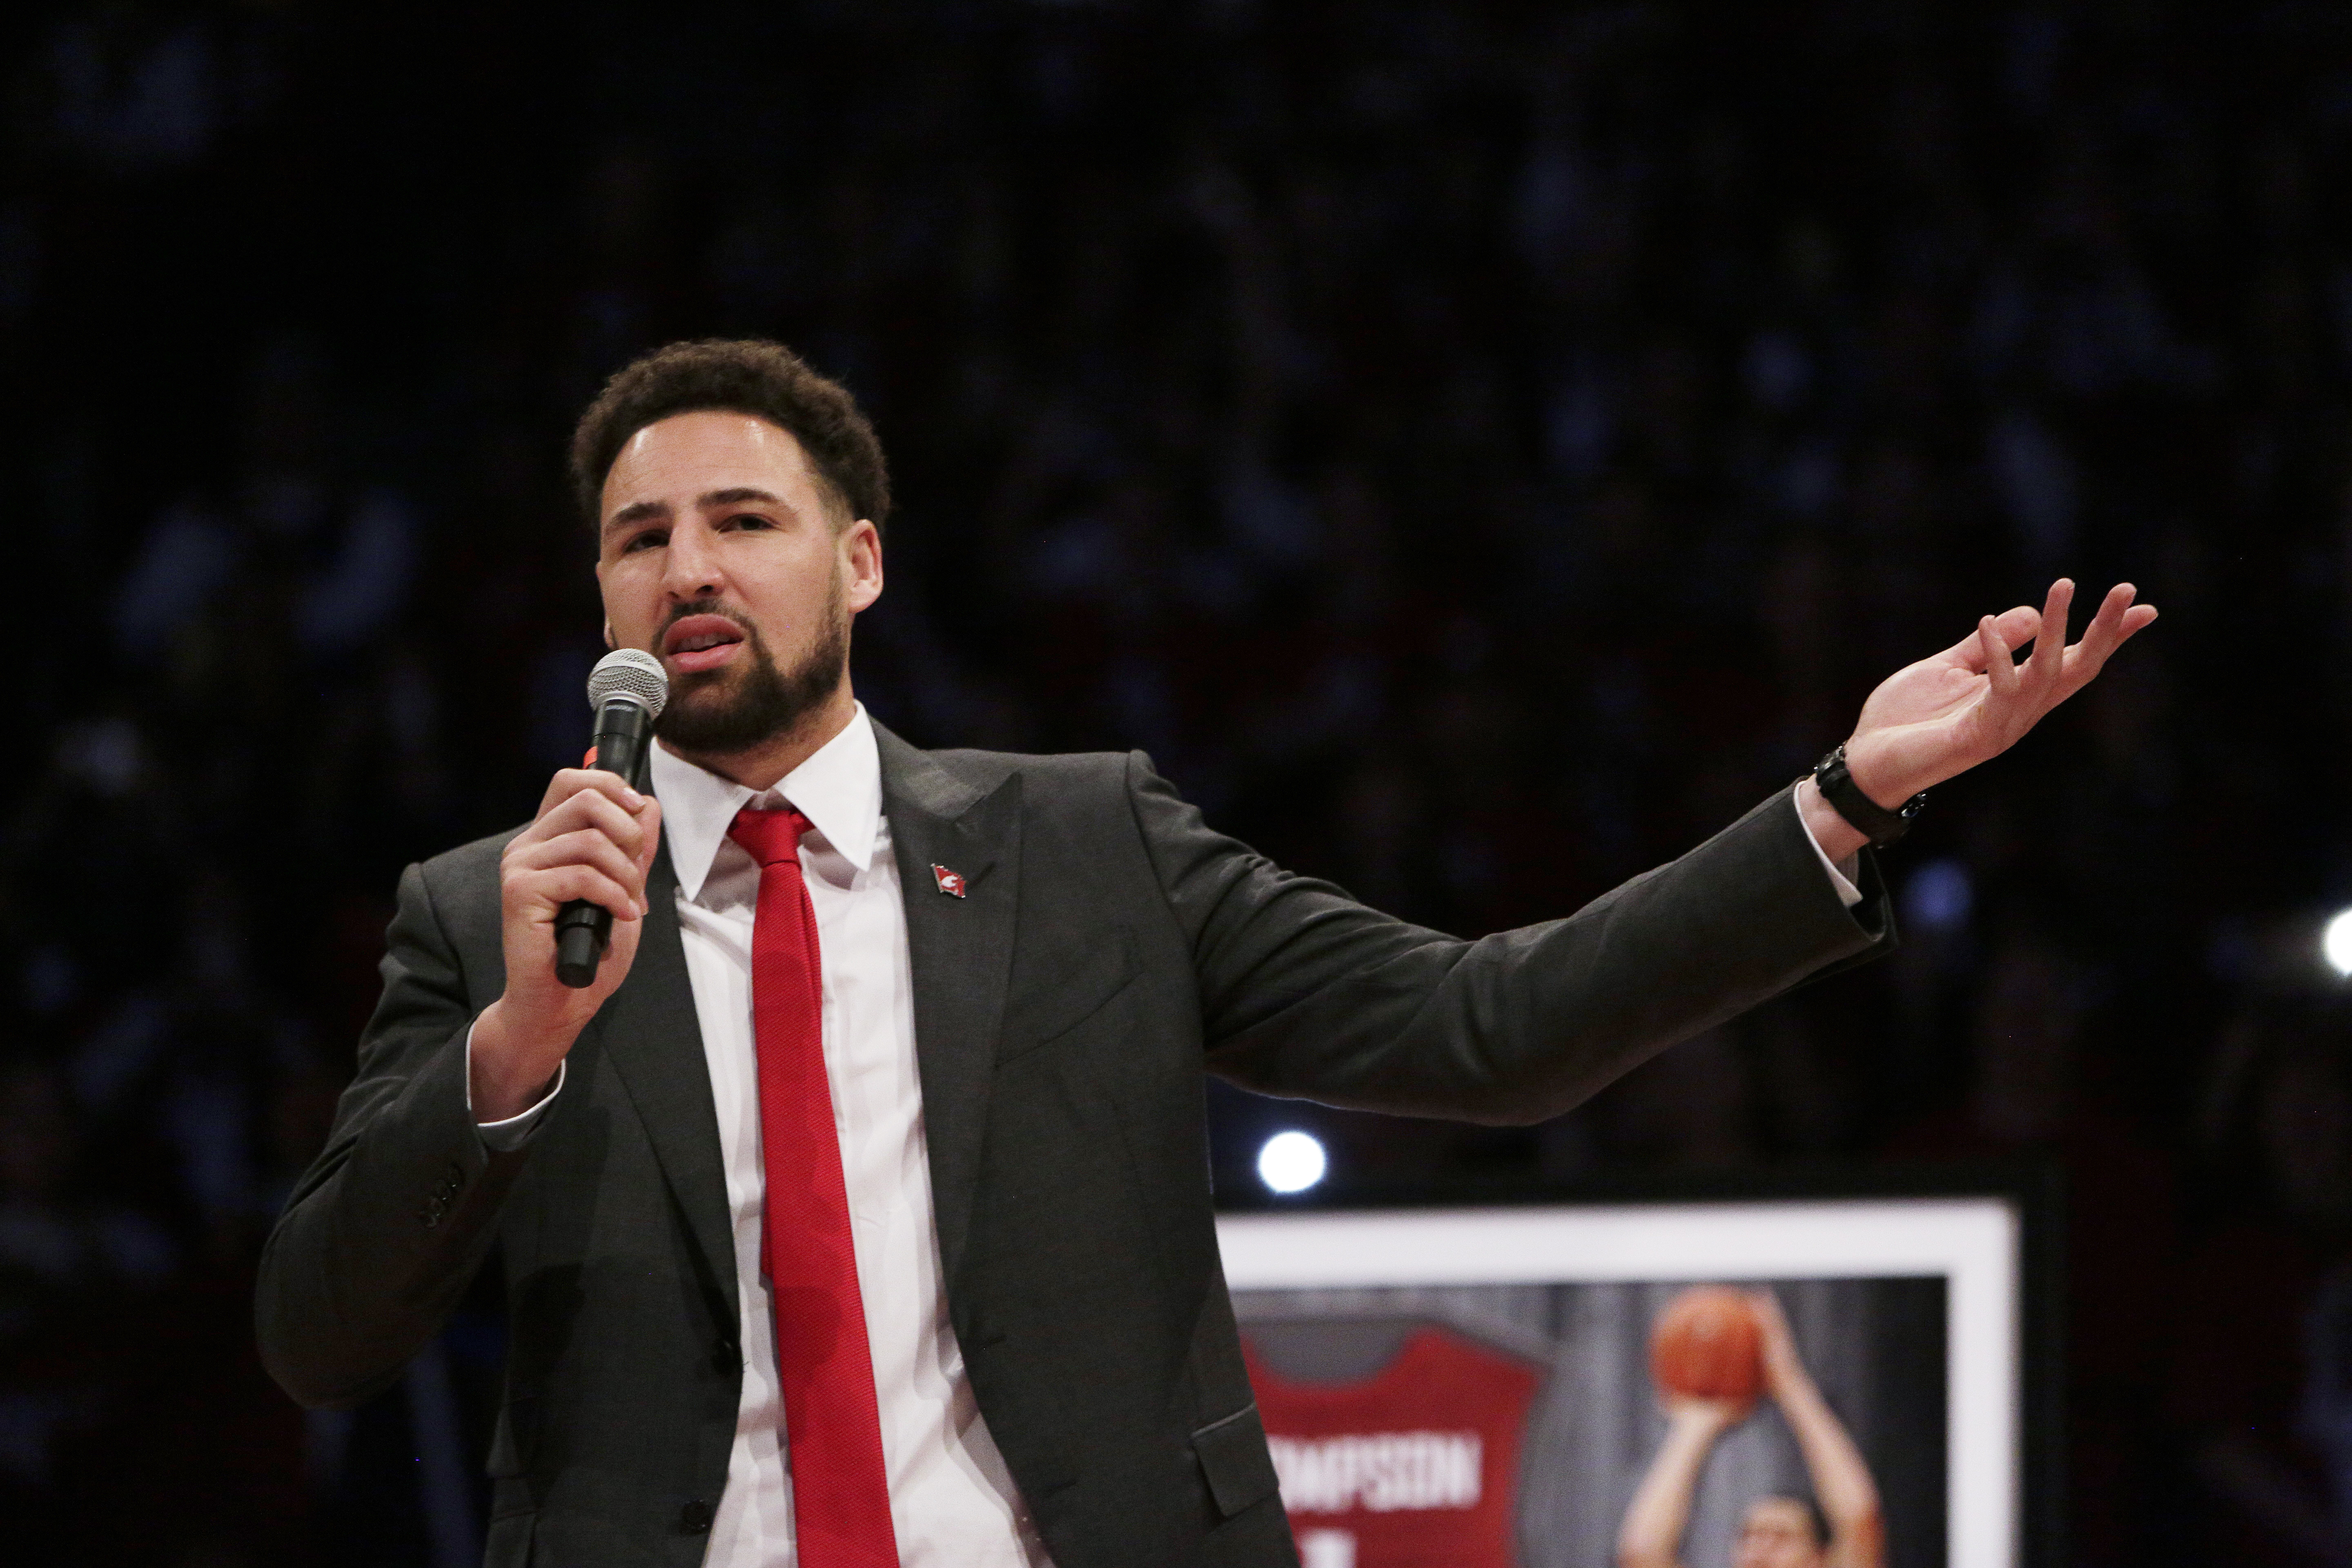 Golden State Warriors and former Washington State guard Klay Thompson speaks as the school retires his jersey number during halftime of an NCAA college basketball game between Washington State and Oregon State in Pullman, Wash., Saturday, Jan. 18, 2020. (AP Photo/Young Kwak)